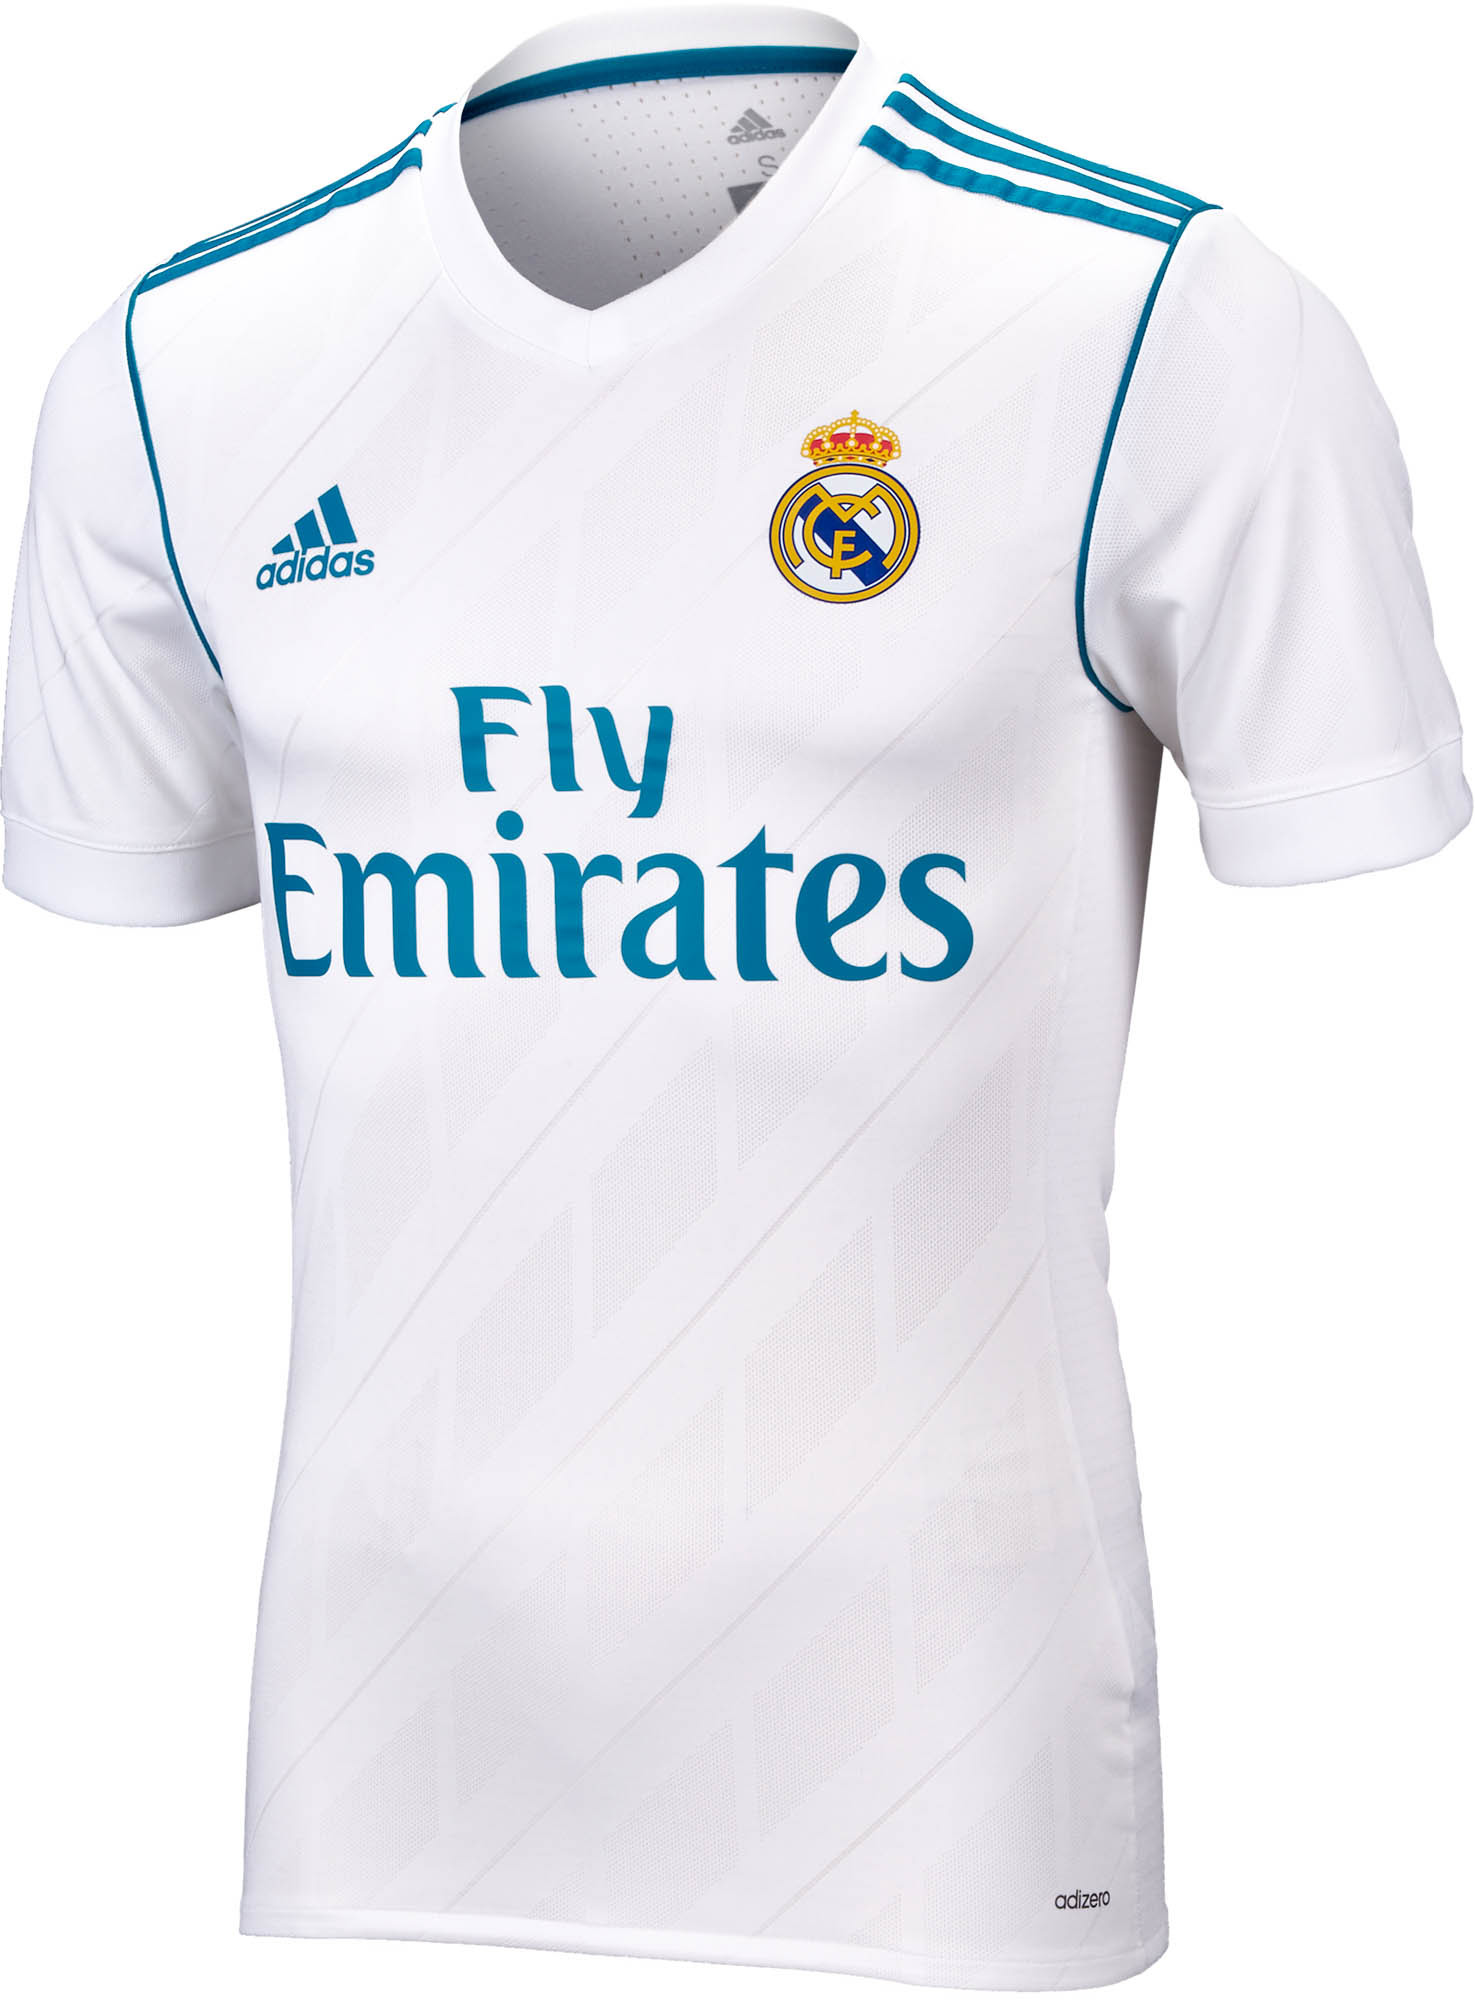 2017 18 adidas Real Madrid Authentic Home Jersey 7ce4e30b4